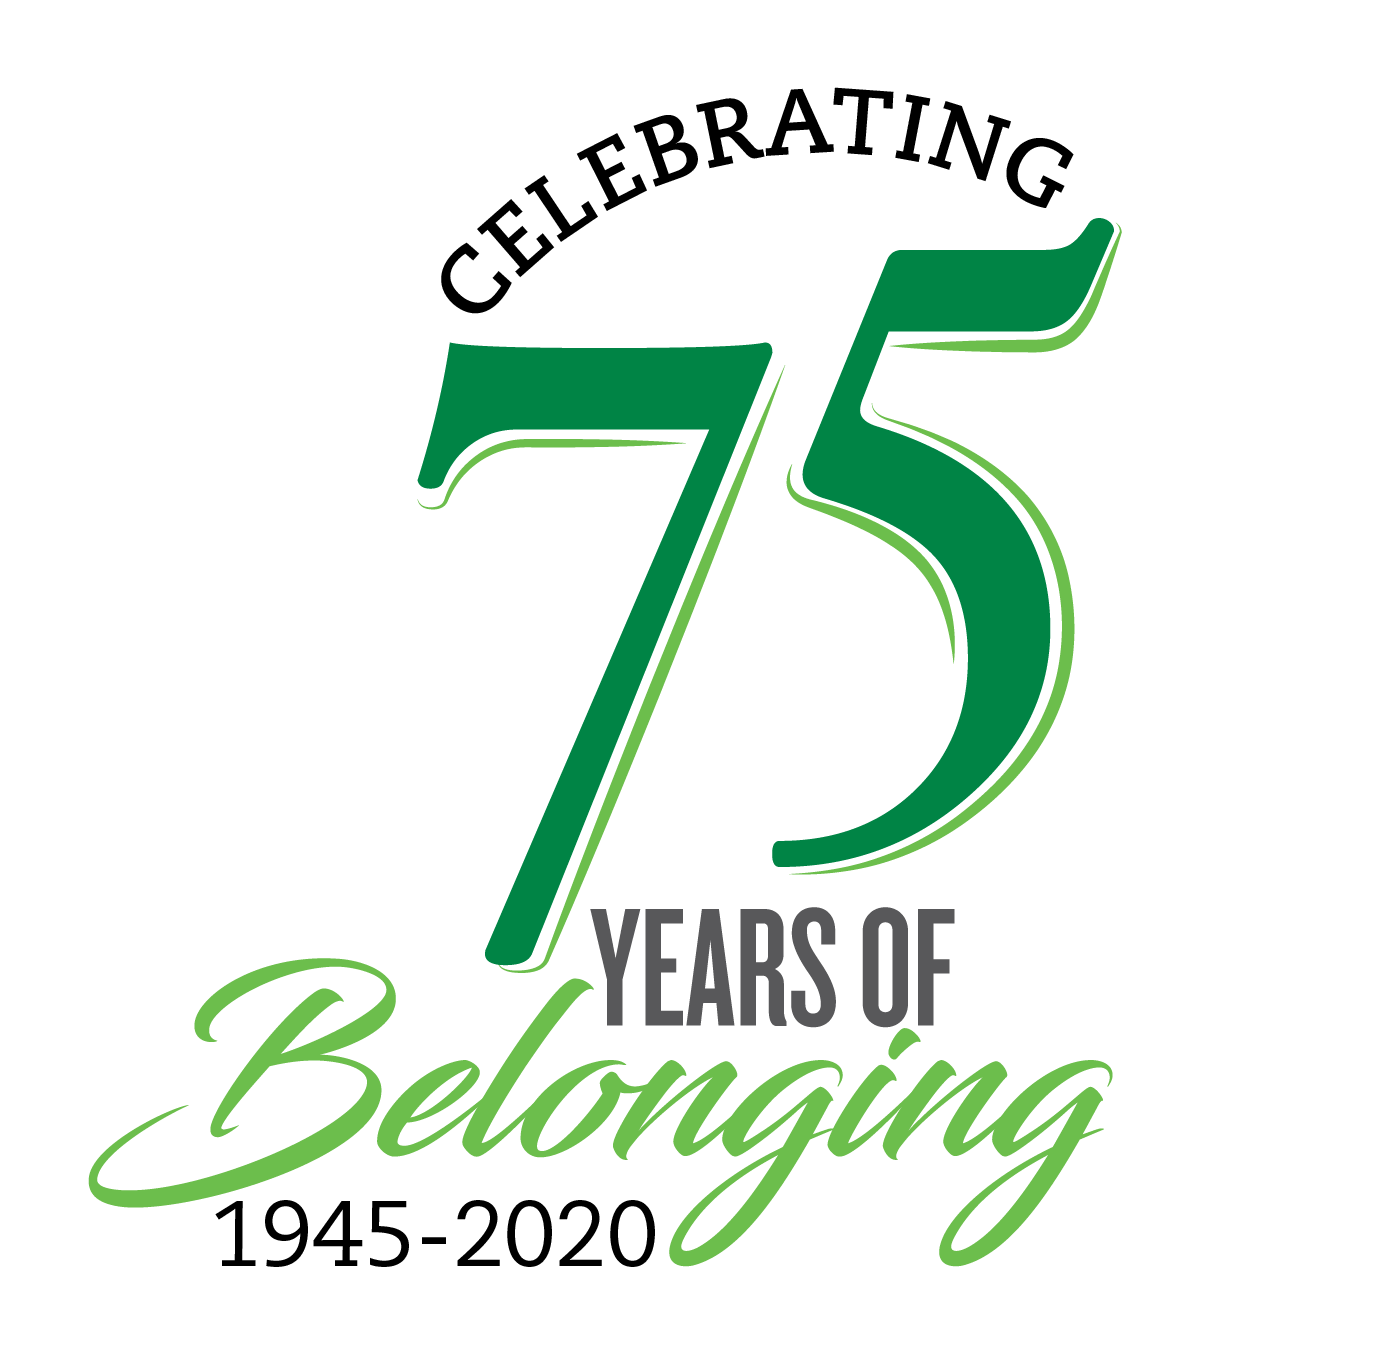 Celebrating 75 Years of Belonging